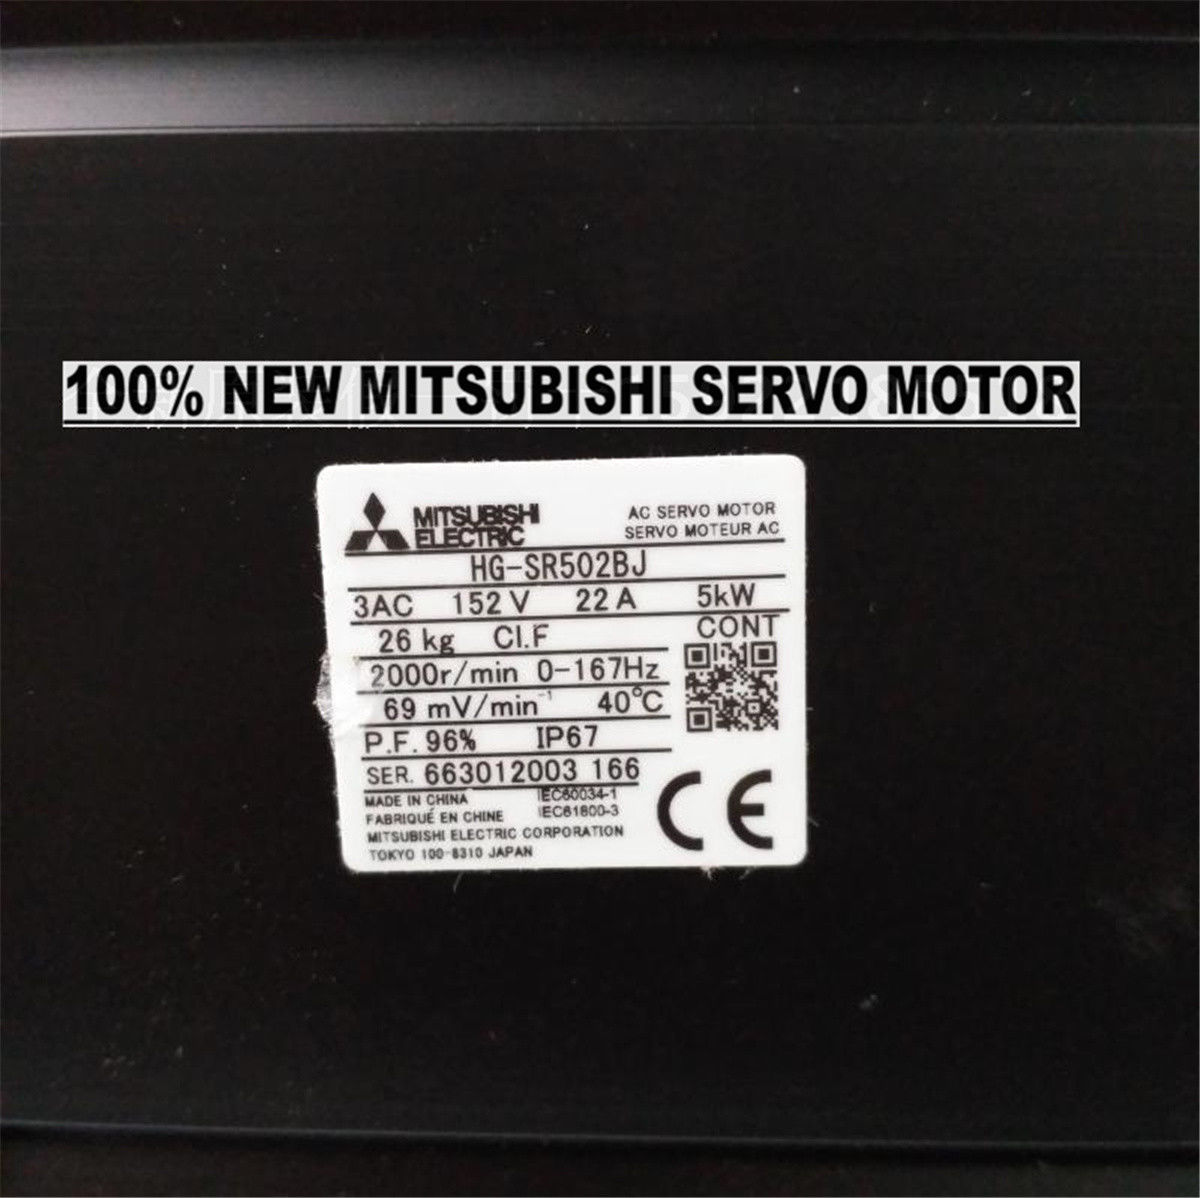 100% NEW  Mitsubishi Servo Motor HG-SR502BJ in box HGSR502BJ